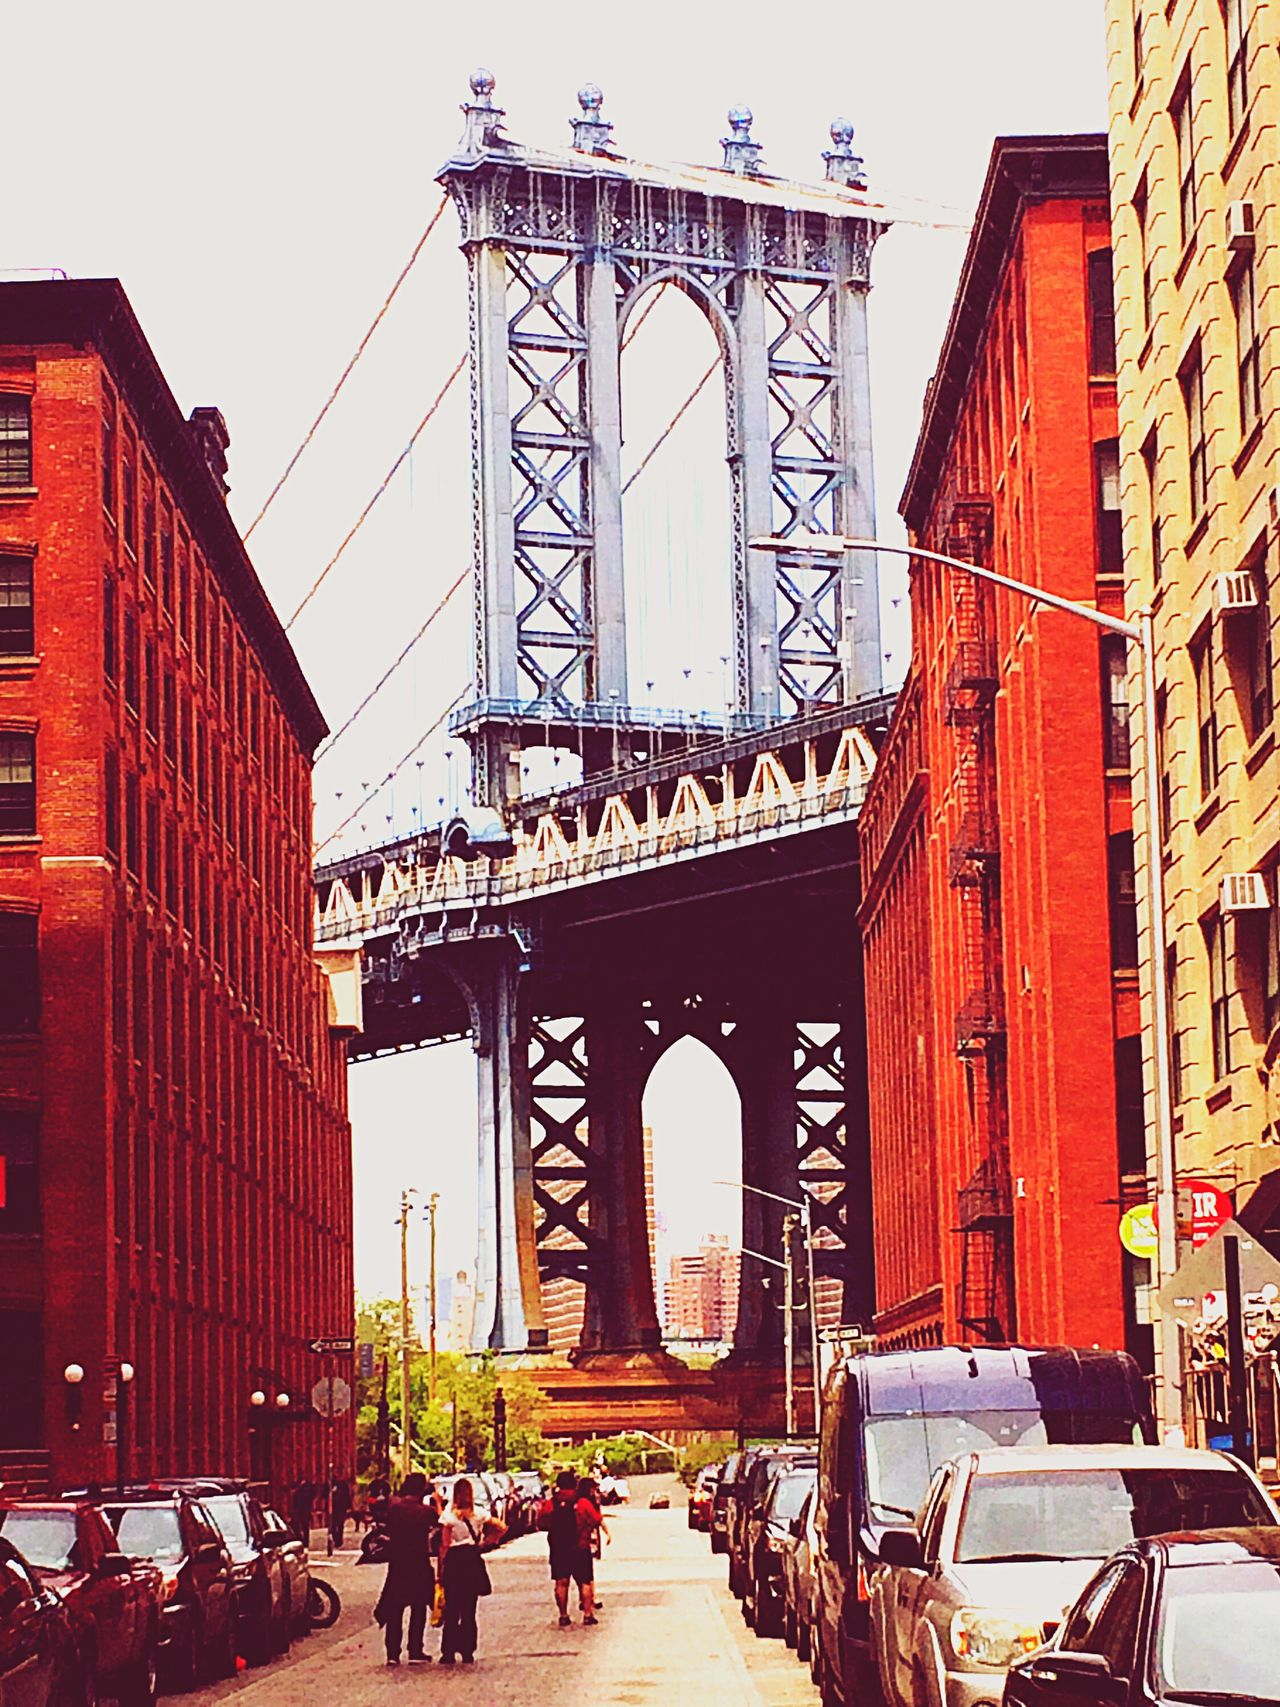 Architecture Travel Destinations Building Exterior Outdoors City Street Photography DUMBO, Brooklyn DUMBO Brooklyn Nyc Brooklyn Bridge / New York Brooklyn Bridge  Brooklyn Streetphotography Colorfulbuildings